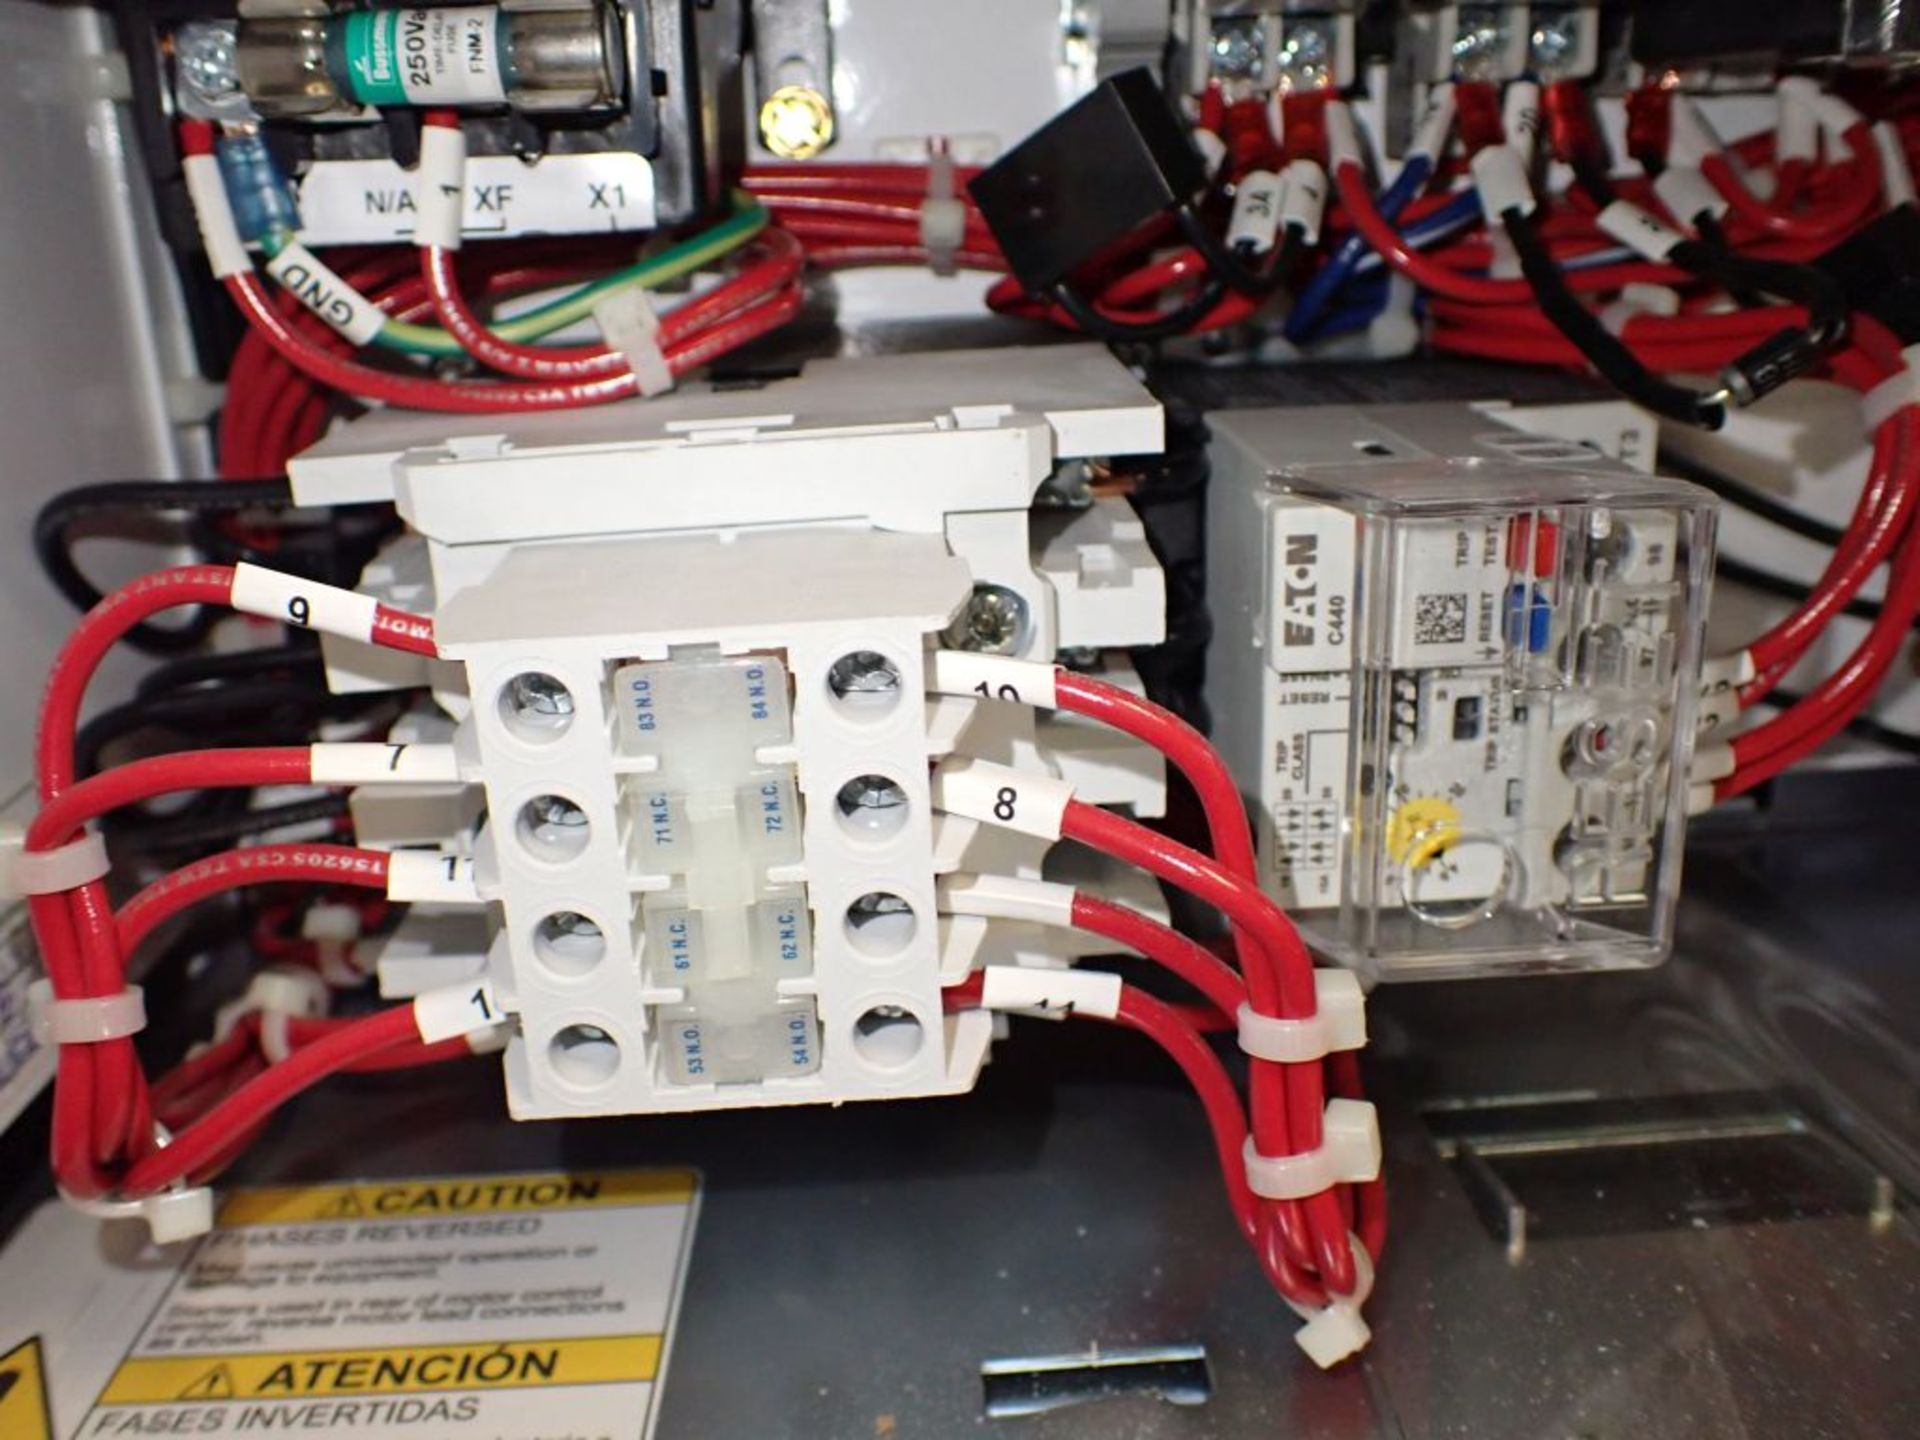 Eaton Freedom 2100 Series Motor Control Center | (11) F206-30A-10HP; (5) F206-15A-10HP; (1) SVX900- - Image 43 of 102